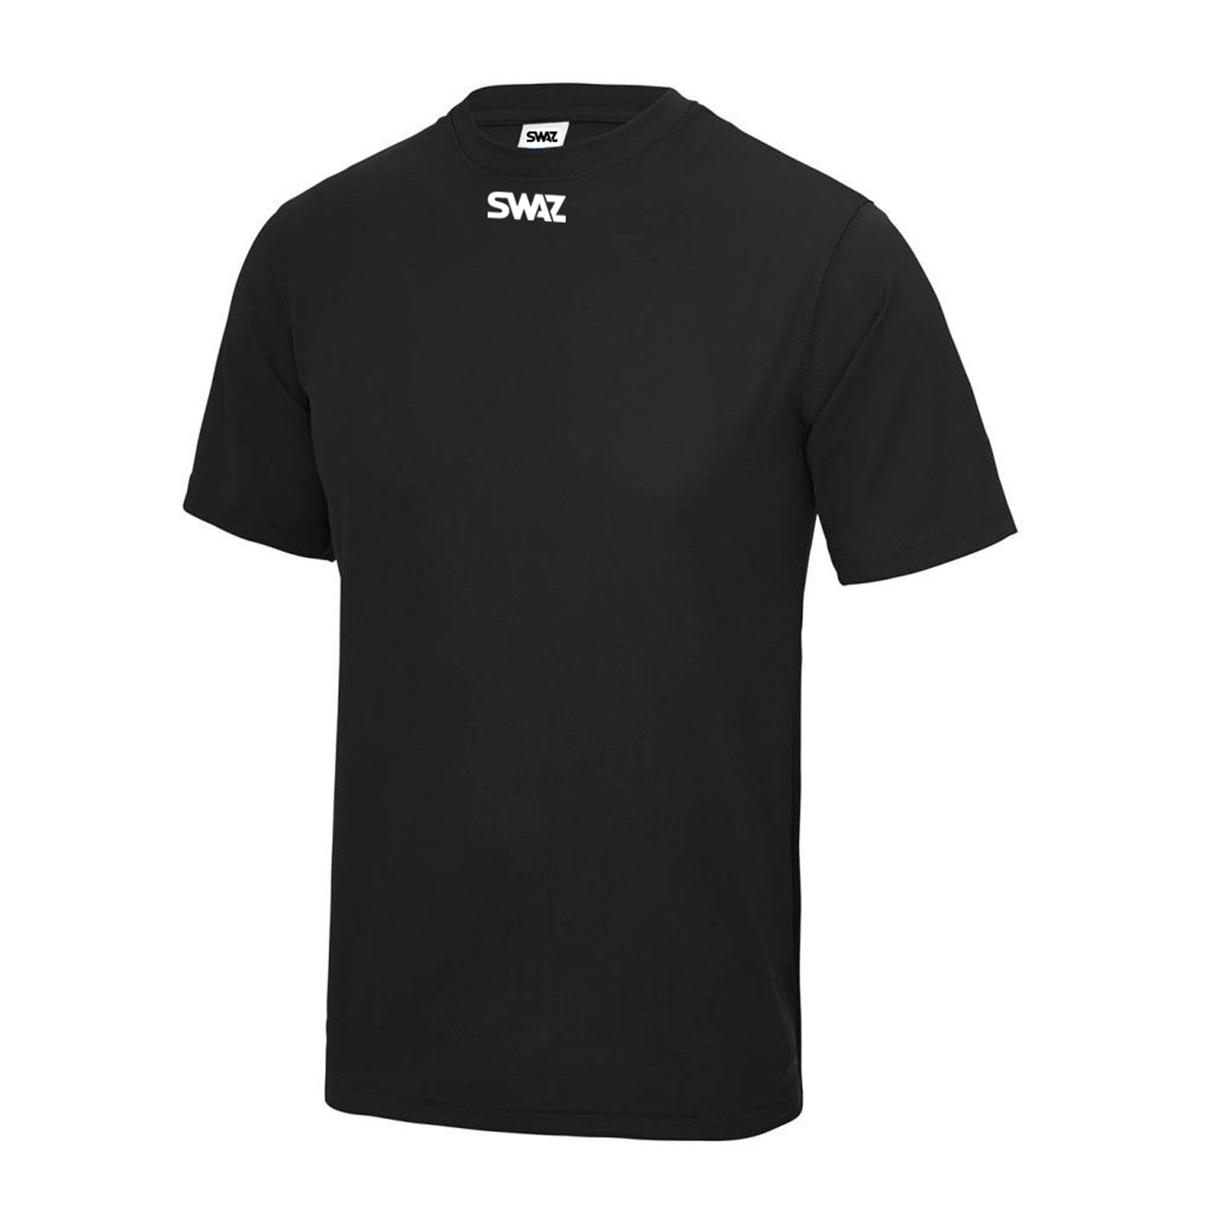 SWAZ Youth Club Training T-Shirt – Black